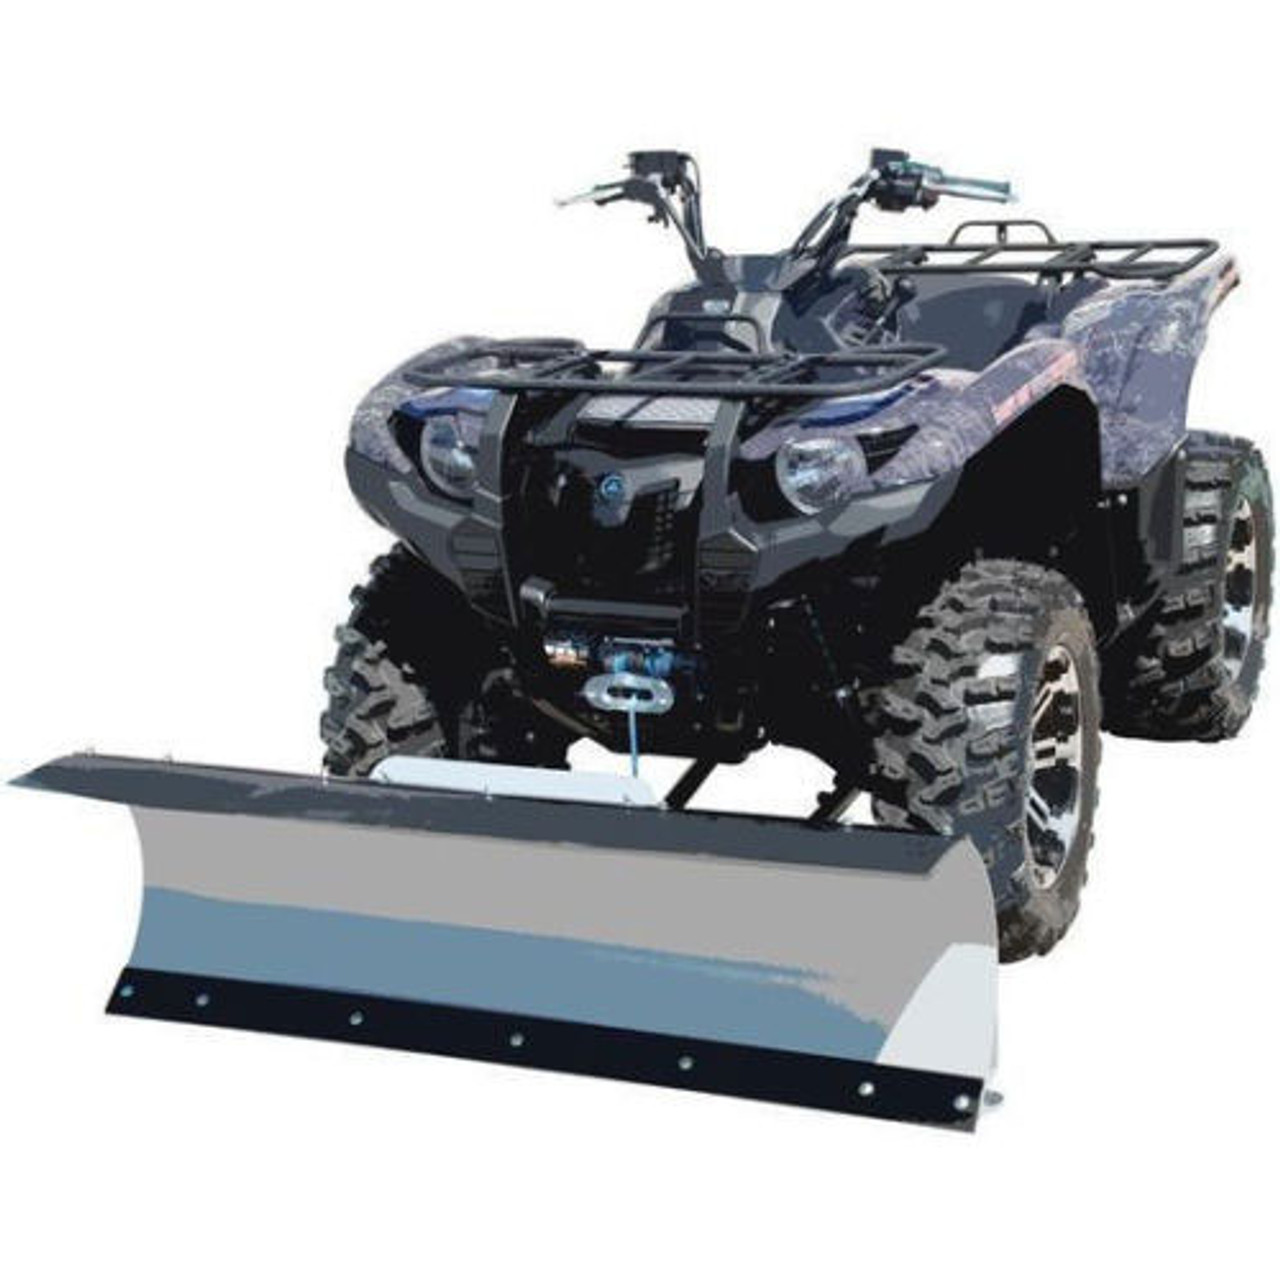 snow plow packages for polaris atv models select plow blade plow mount winch options westendmotorsports com [ 1280 x 1280 Pixel ]